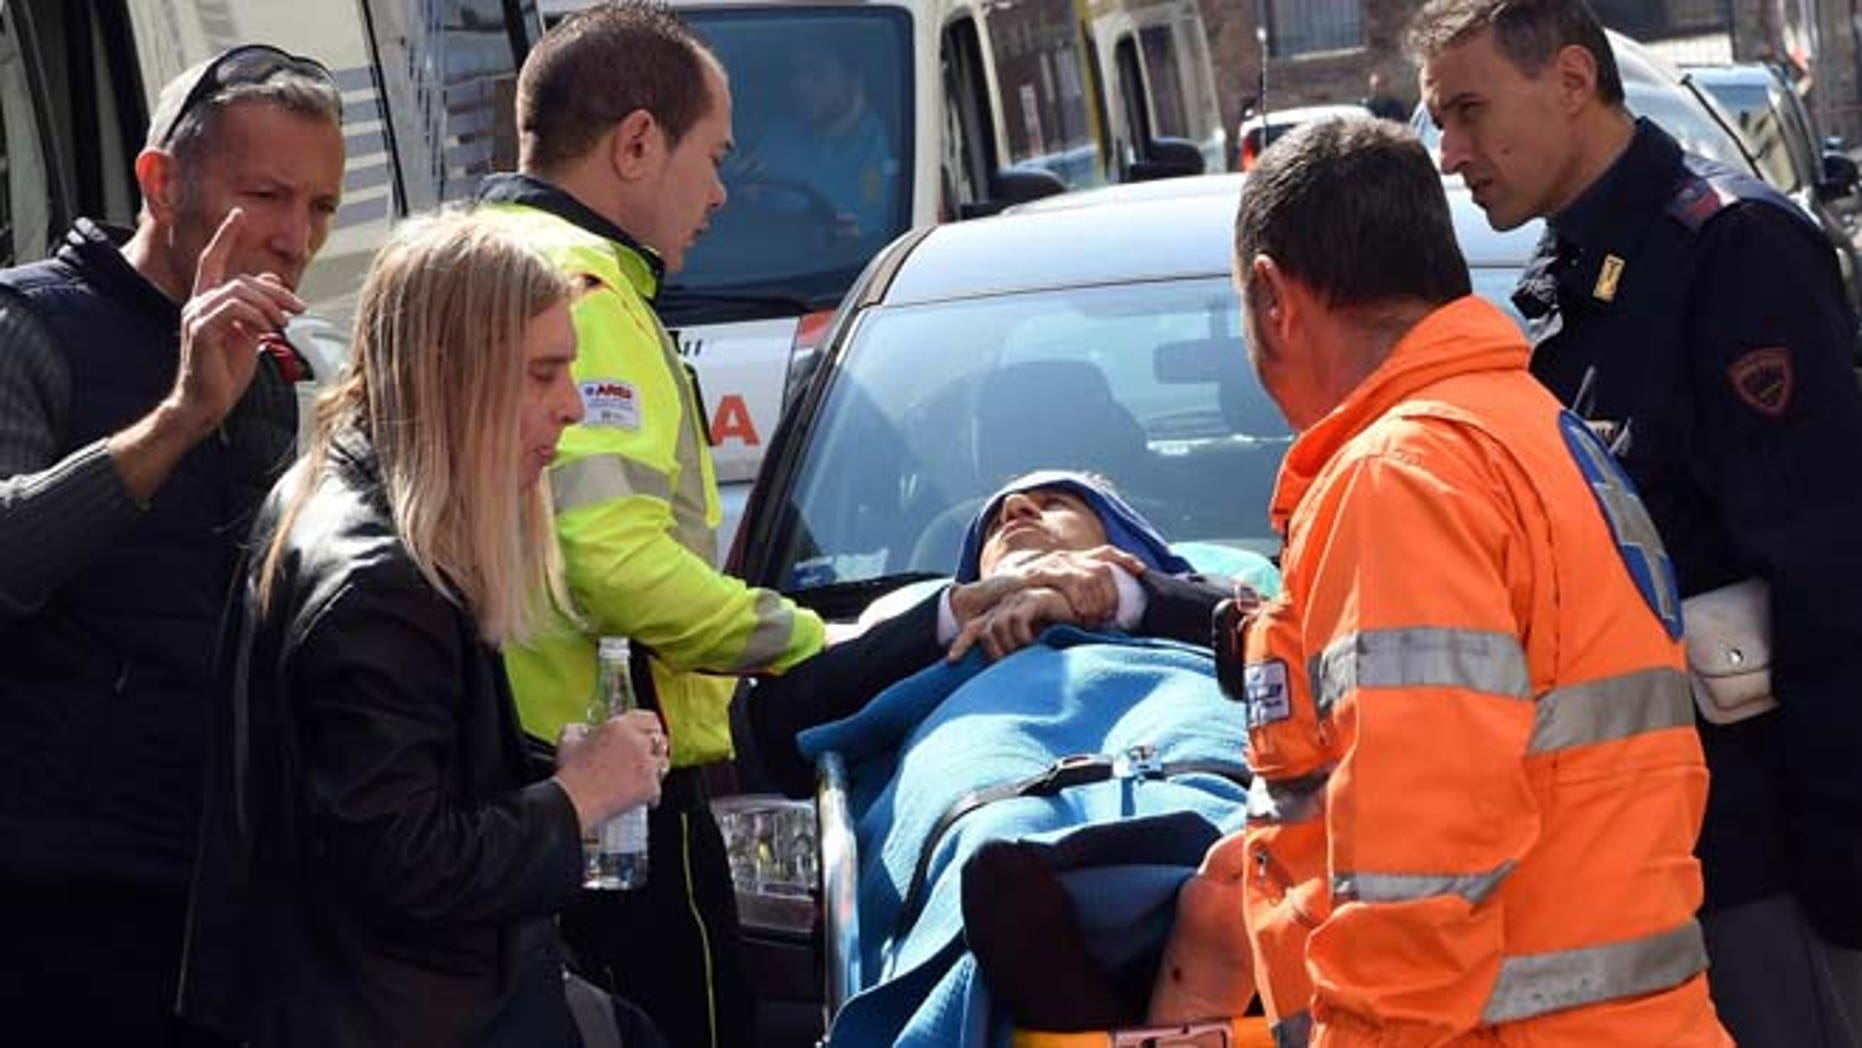 April 9, 2015: Rescuers and police help an injured man outside the tribunal building in Milan, Italy, after a shooting erupted inside a courtroom.